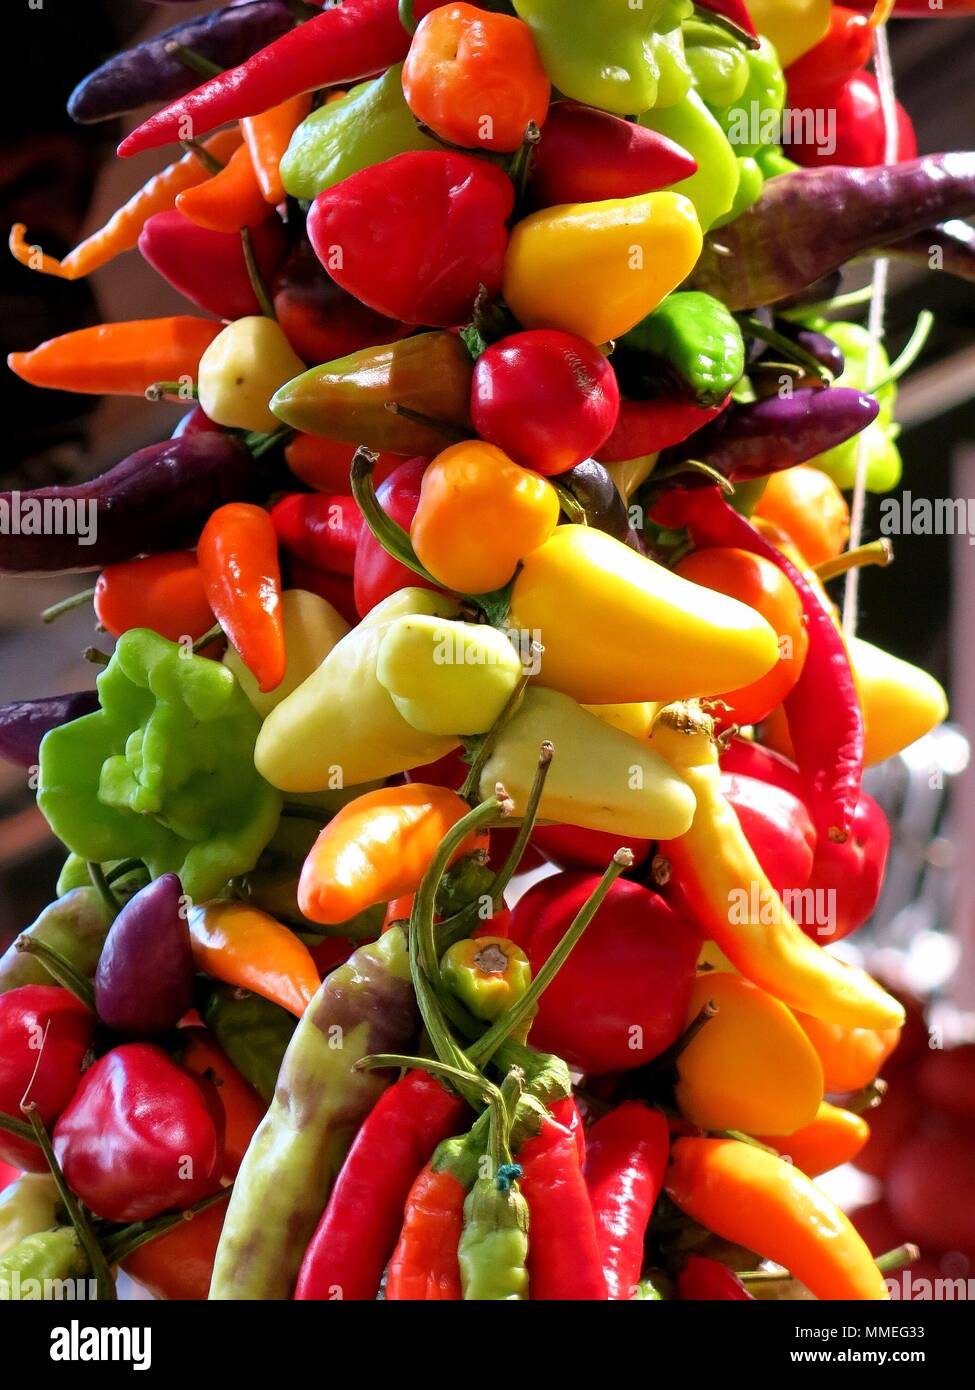 Vegetables hanging in open air market - Stock Image